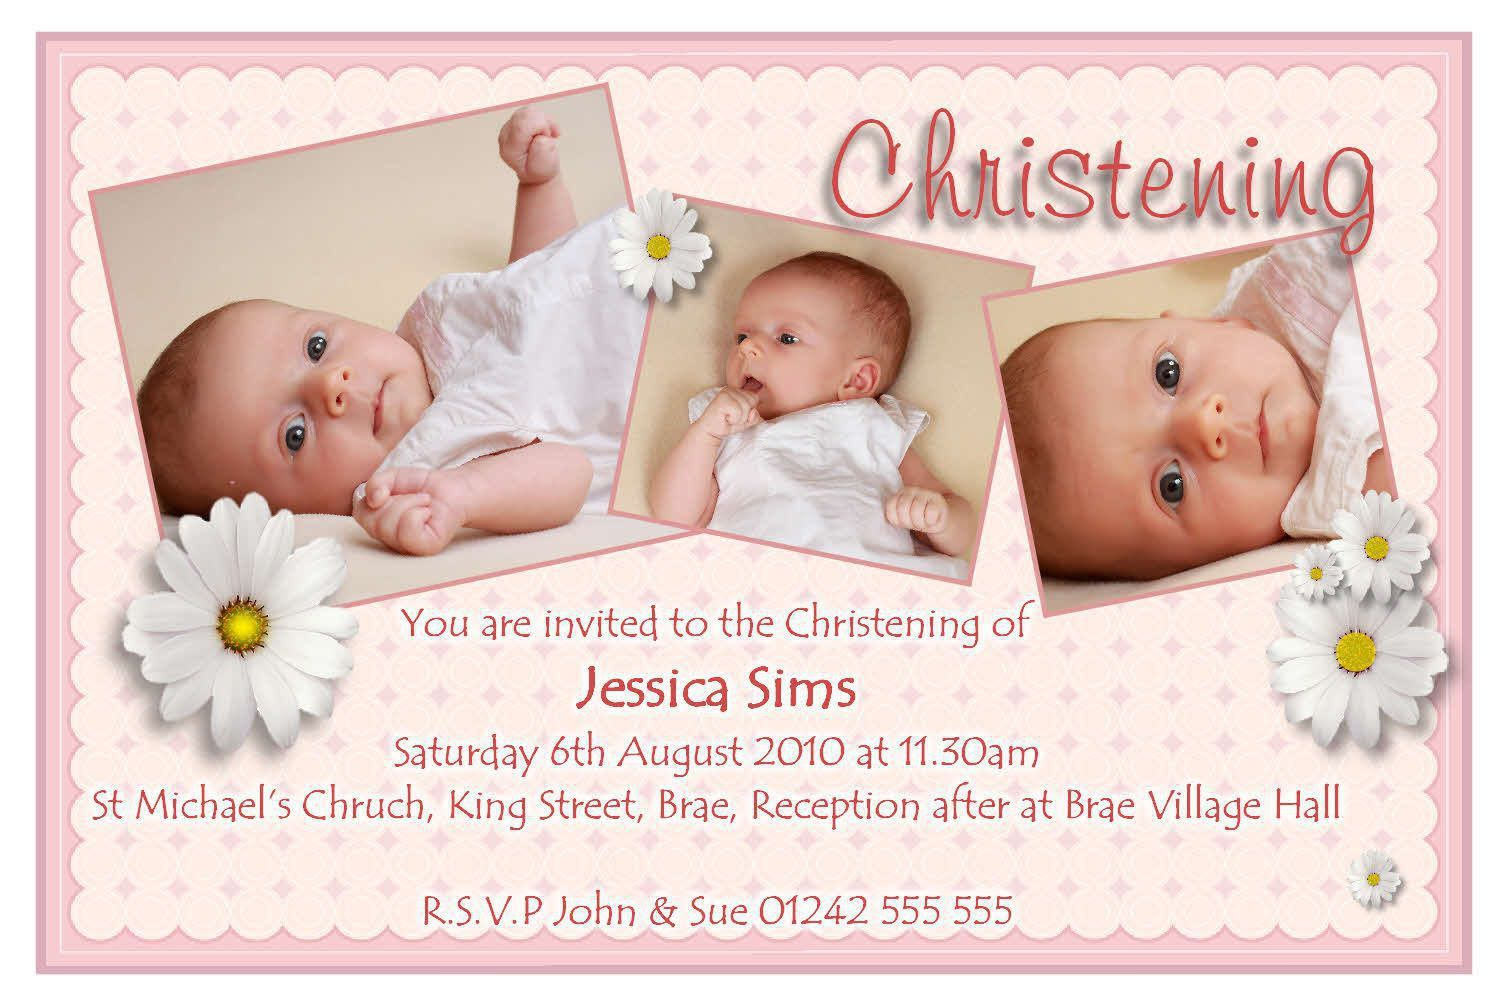 Baptism invitation baptism invitations for girl free invitation baptism invitation baptism invitations for girl free invitation for you free invitation for you stopboris Gallery